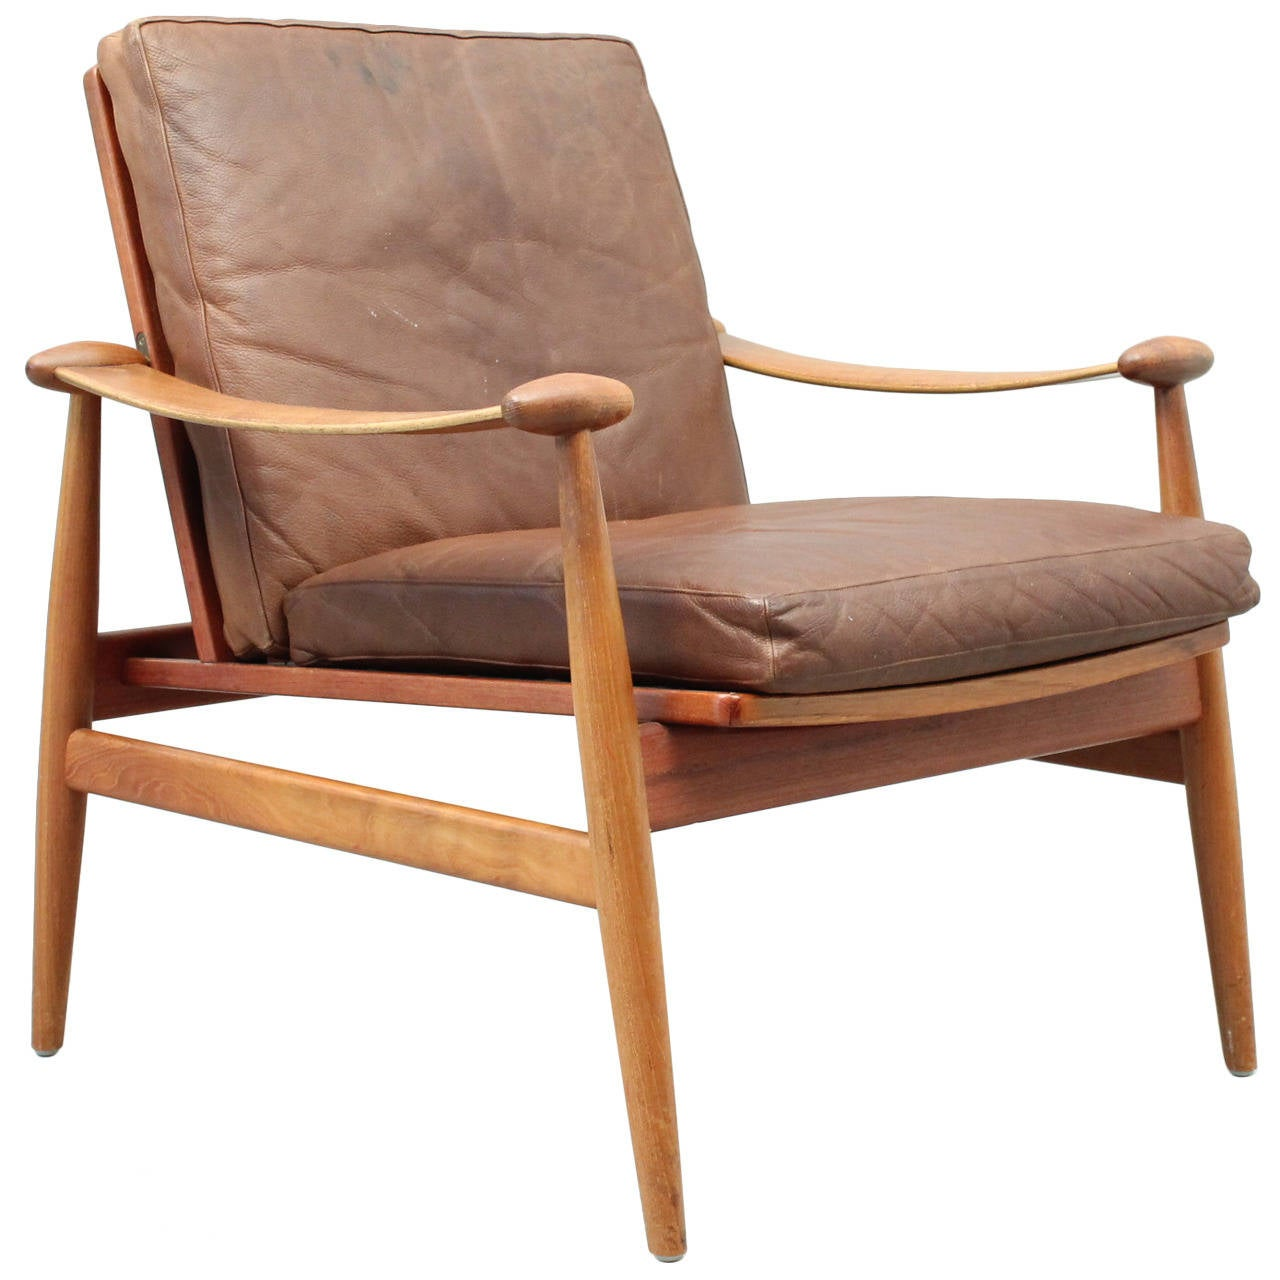 Finn juhl spade chair fd133 with brown leather danish mid century modern for sale at 1stdibs - Danish furniture designers ...